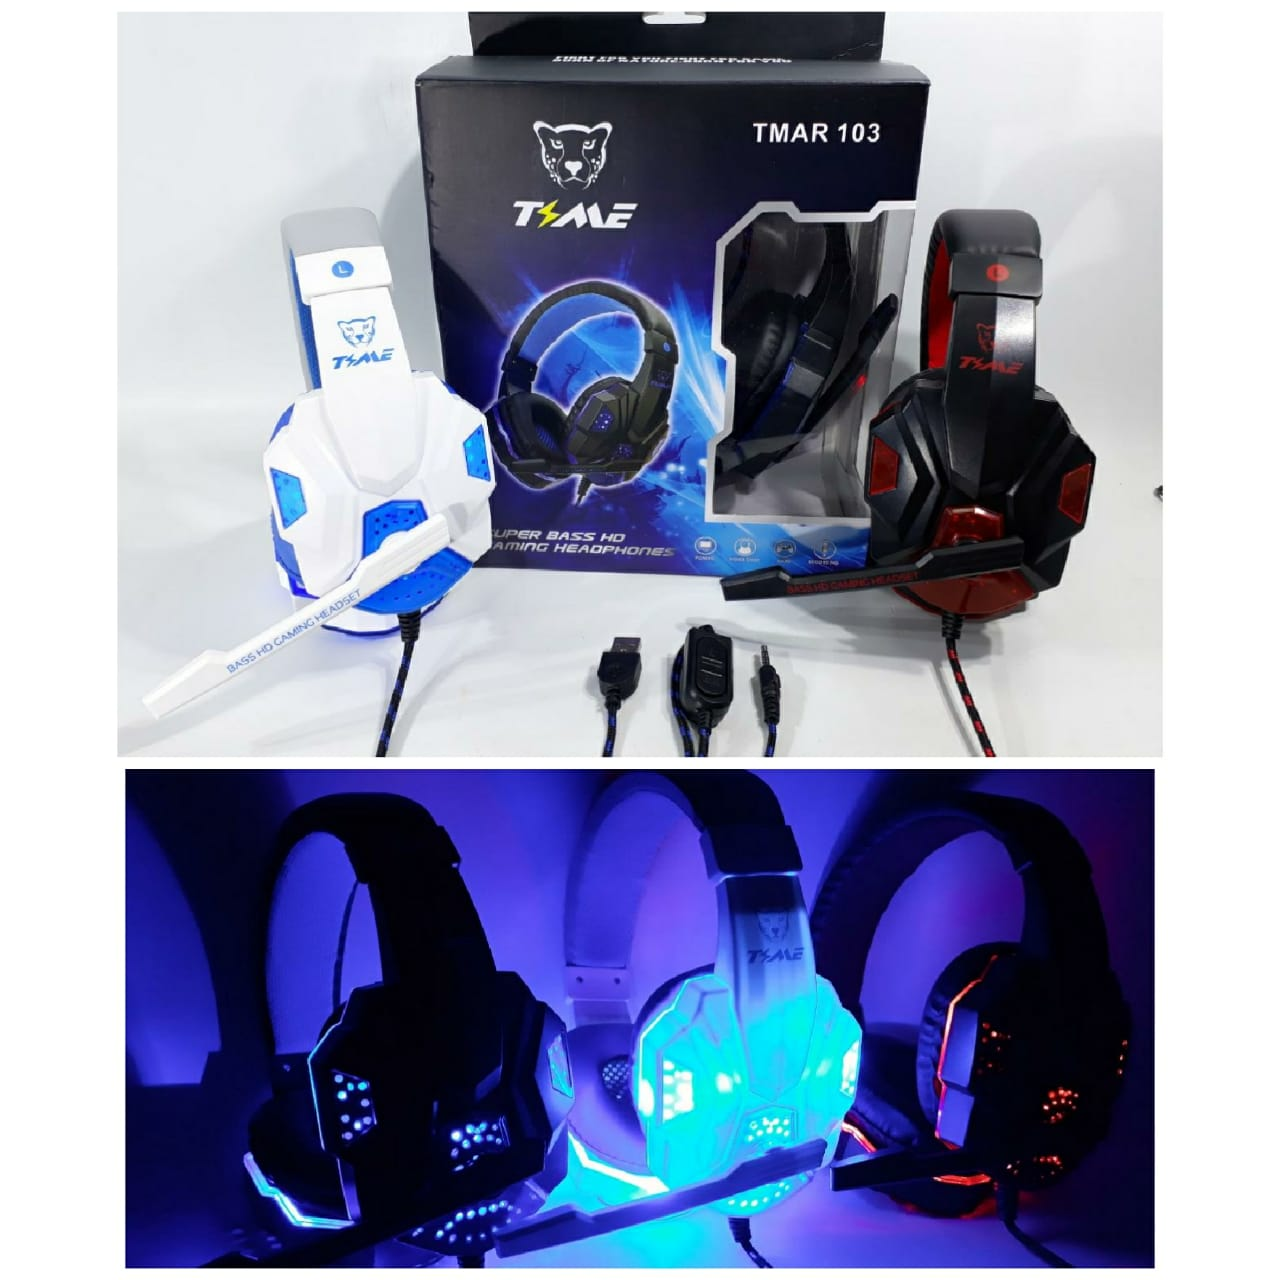 ELG VINCHA GAMER TIME C/ LUZ LED (PS4,PC) 2mt cordon JGT